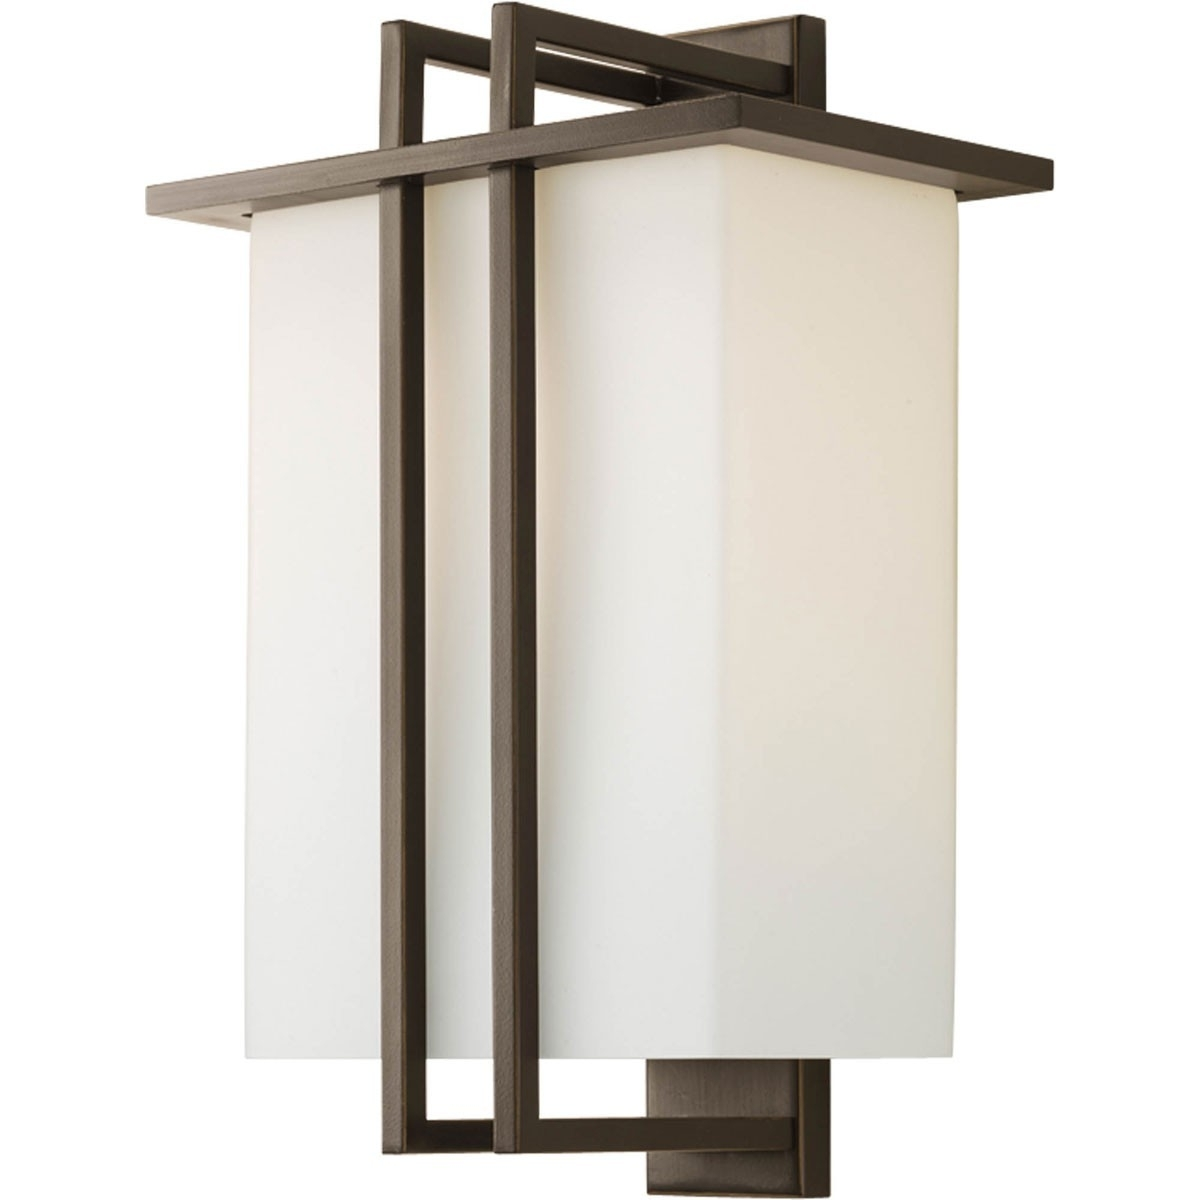 Outdoor Large Wall Lantern With Etched Opal Shades – Progress With Regard To Popular Large Outdoor Wall Light Fixtures (View 14 of 20)